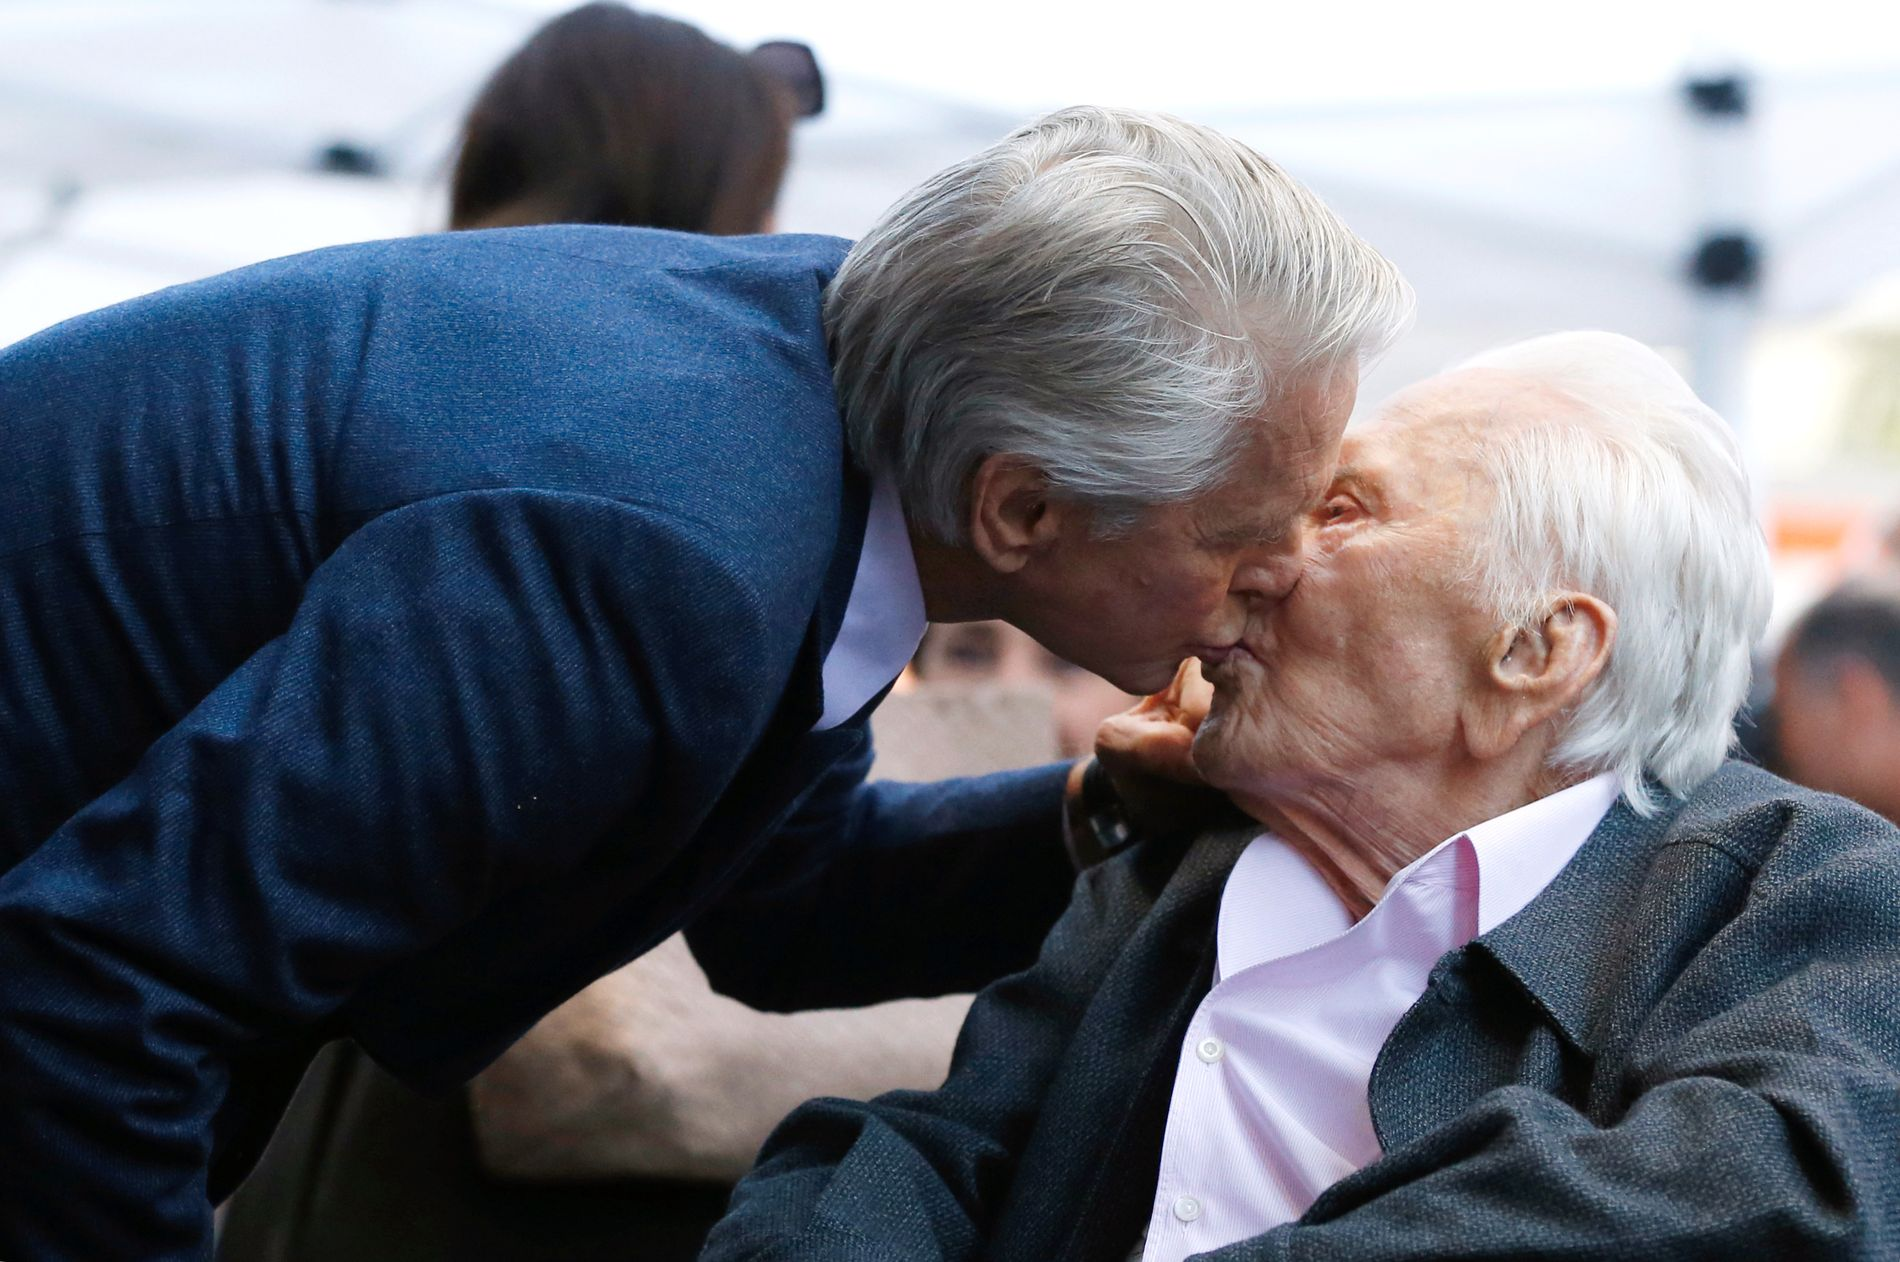 LOVE: Michael Douglas showed everyone who is present how close he has one famous father, Kirk Douglas, on a Monday ceremony.